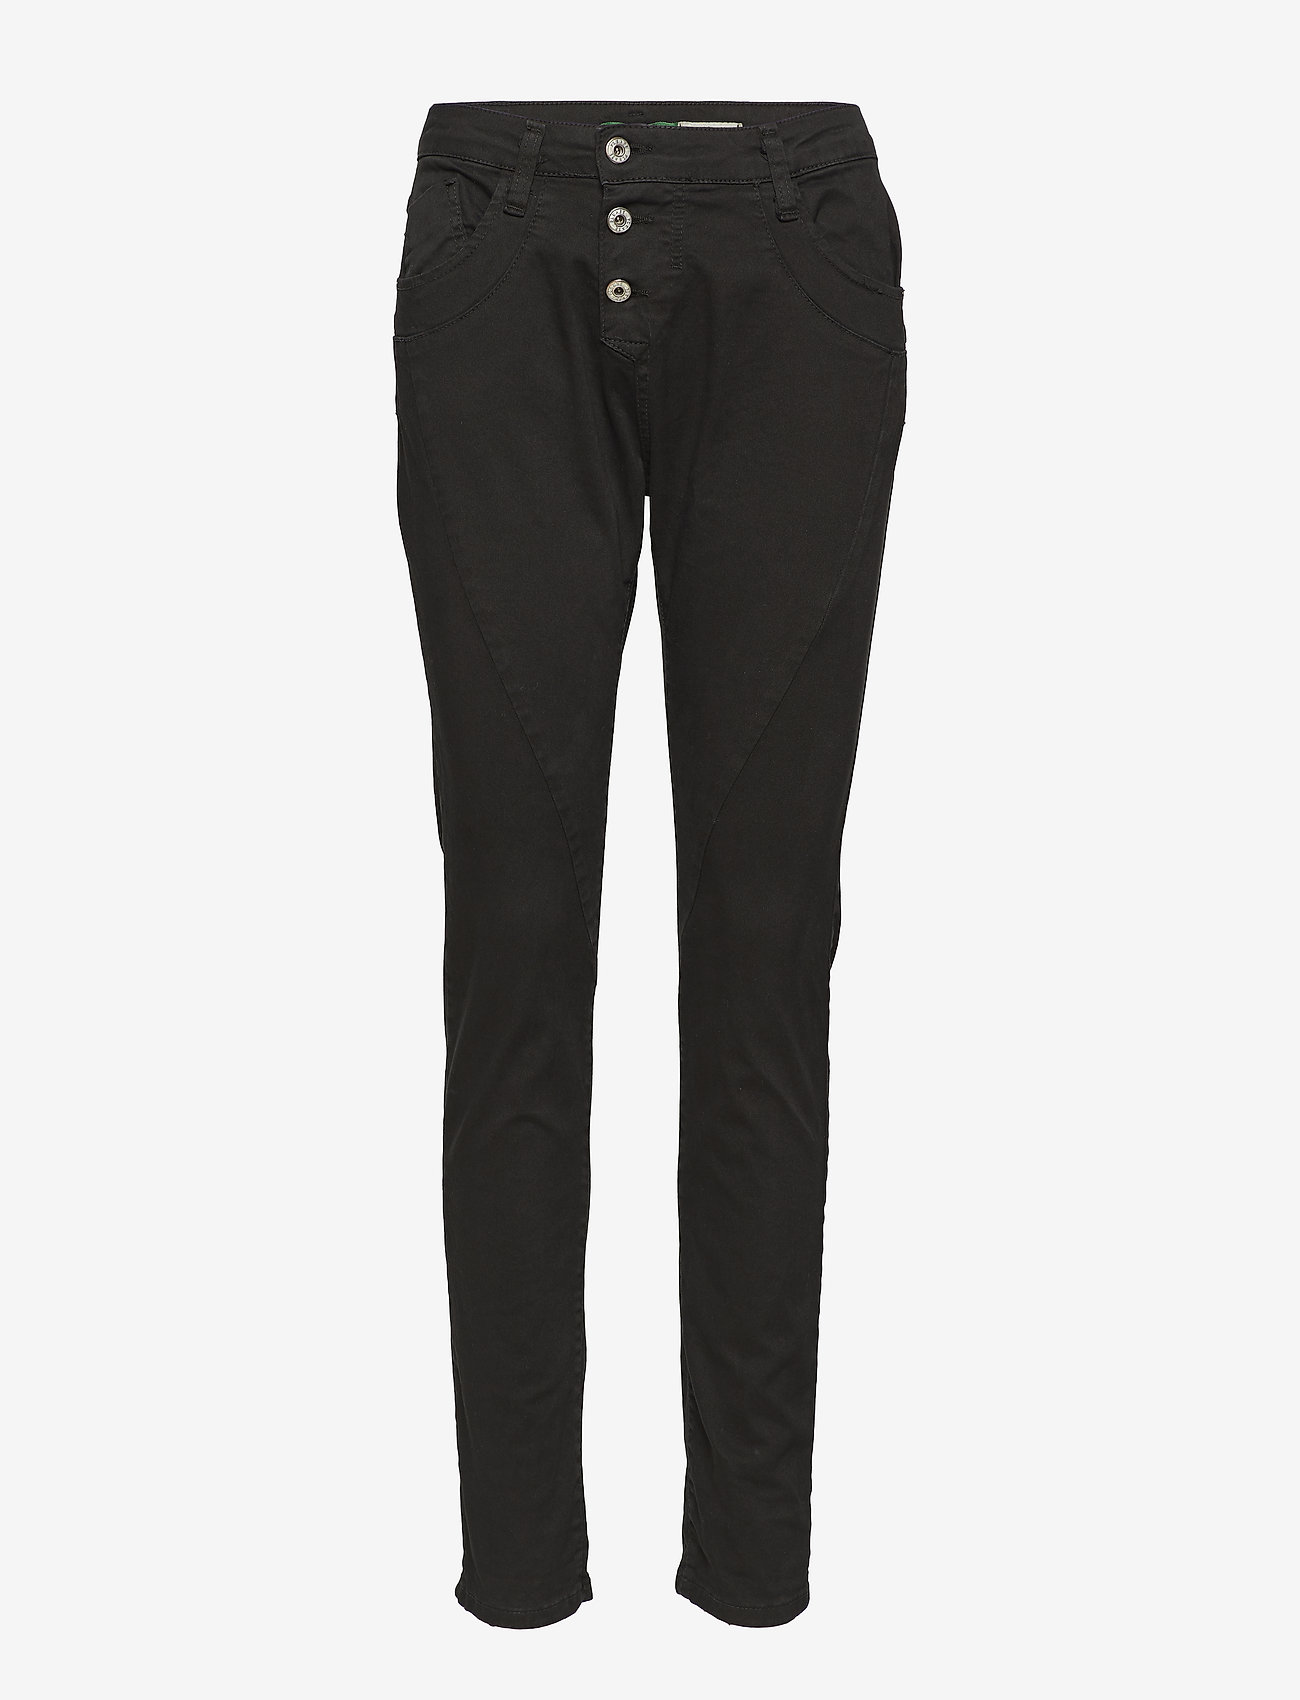 Please Jeans - Classic Cotton Rose Dust - rette bukser - nero - 0